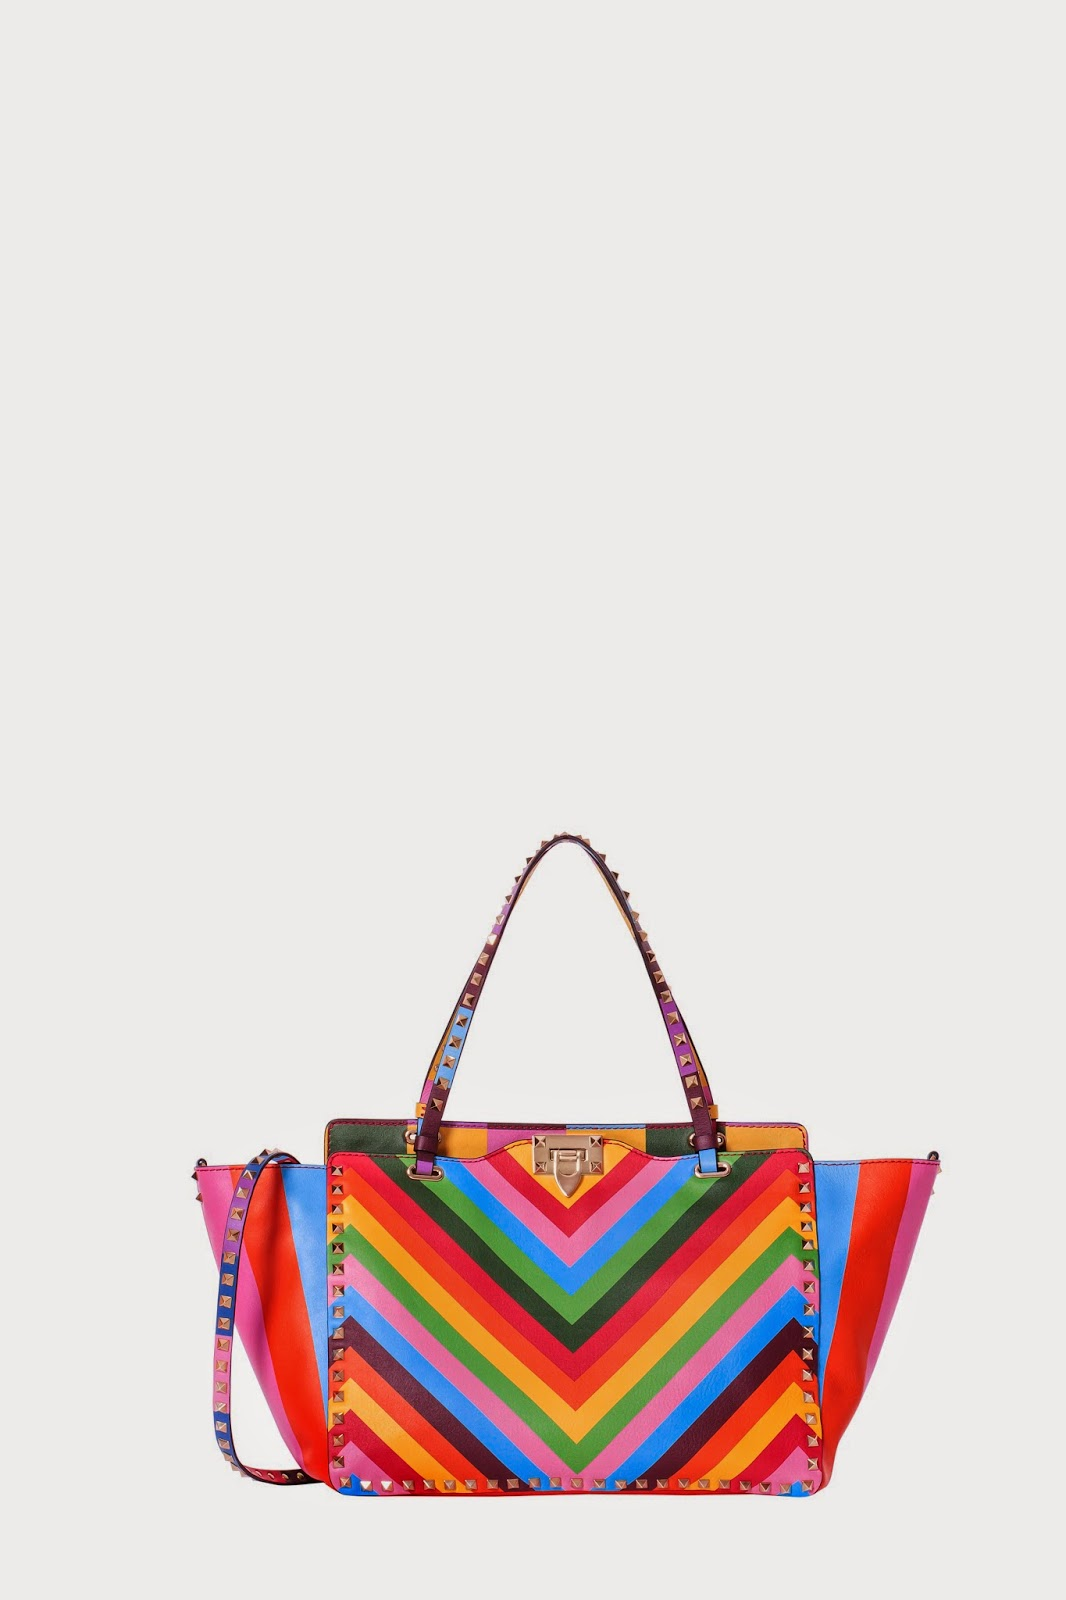 Valentino Does Rainbow Brites for Resort 2015